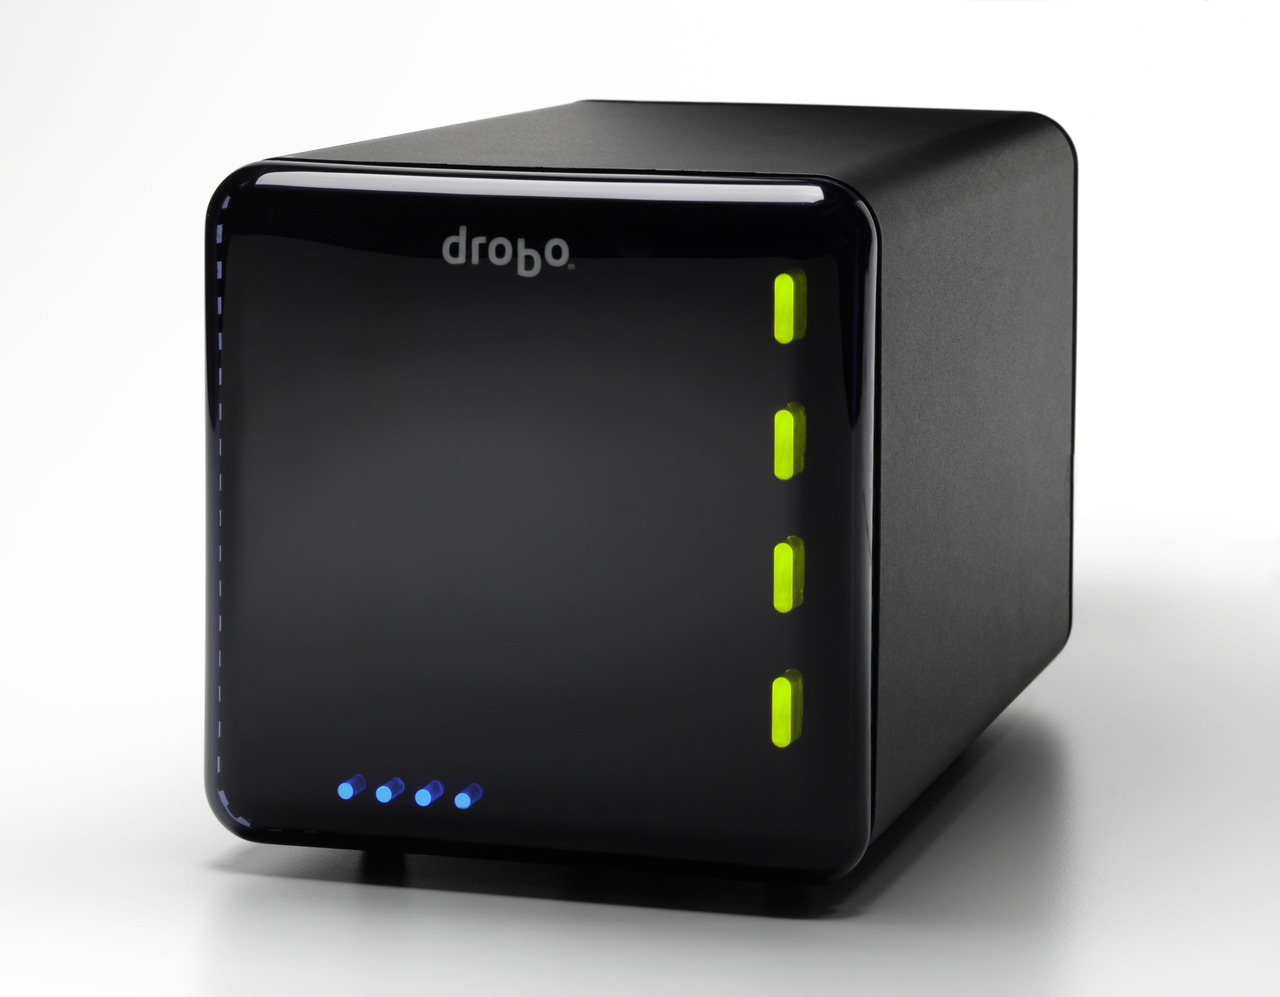 Just ordered a Drobo to help solve the seemingly never-ending problem of running out of storage. This should keep me well-stocked for years to come, and makes it easy to use a few of the old hard drives I have lying around.